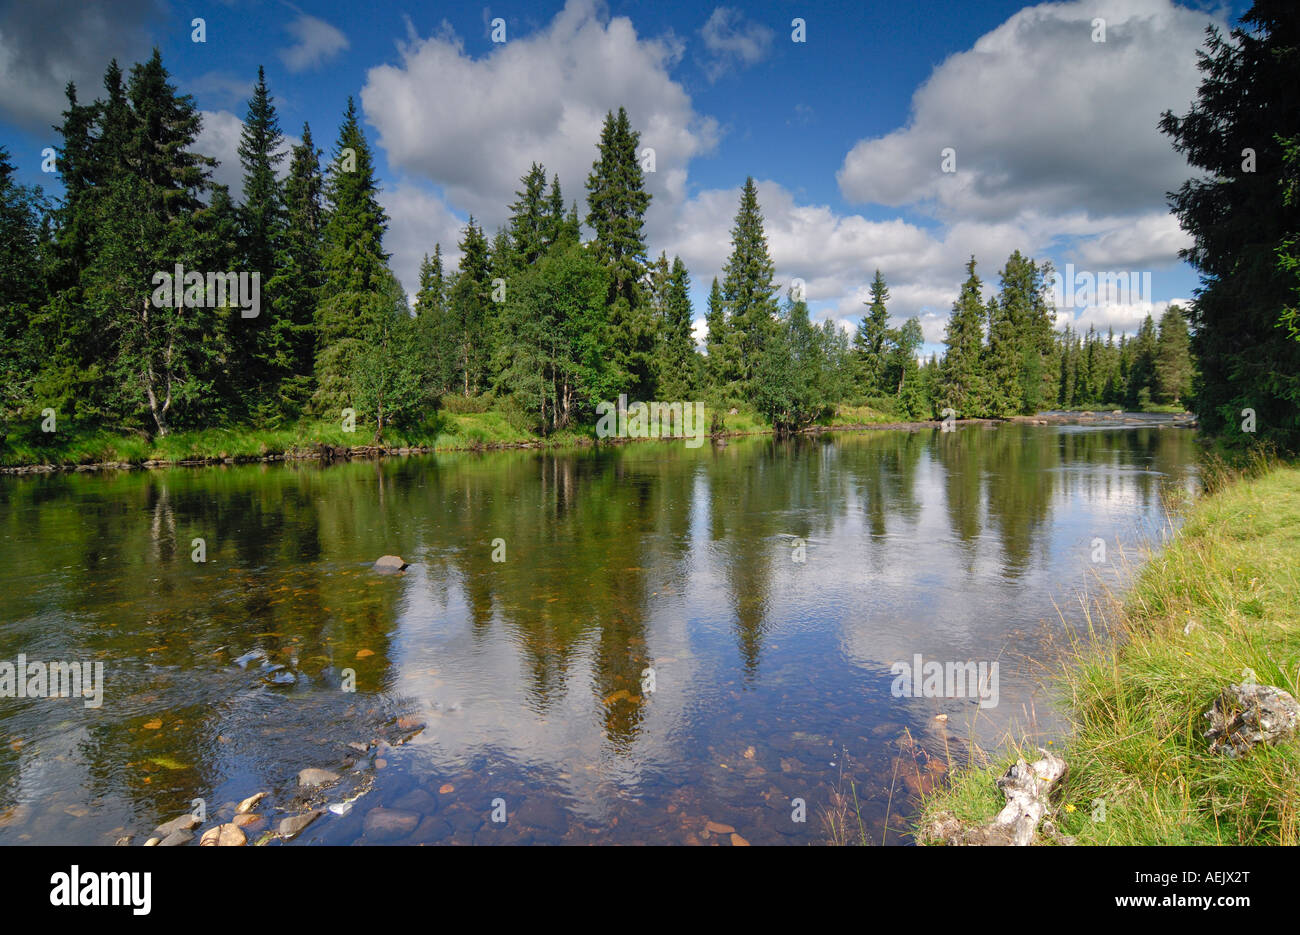 Firs reflecting in a river, Telemark, Norway, Scandinavia, Europe - Stock Image